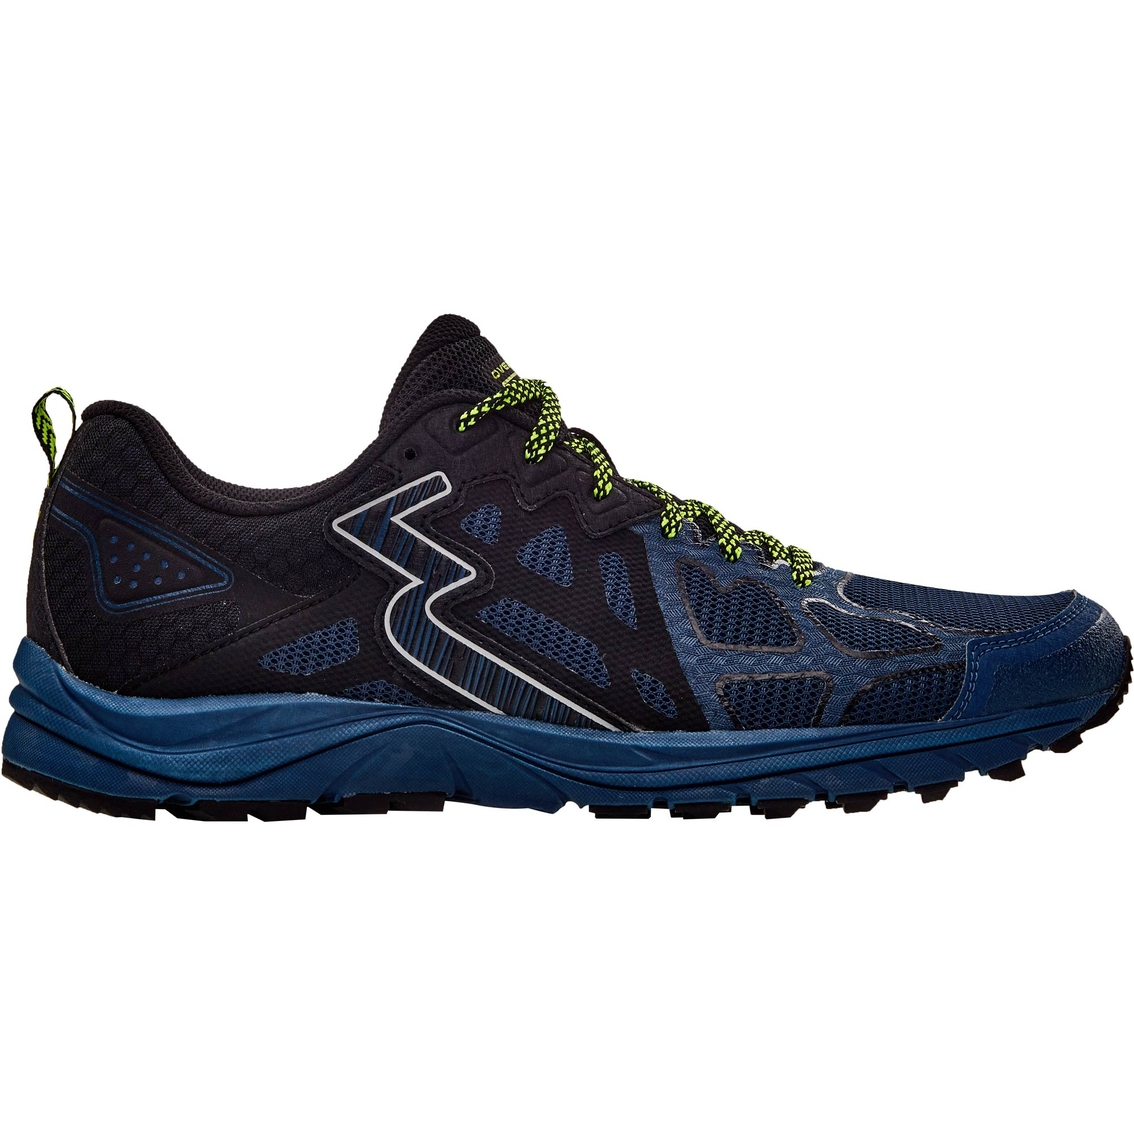 fa441c22558a4 361 Degrees Overstep 2 Trail Running Shoes   Hiking & Trail   Back ...